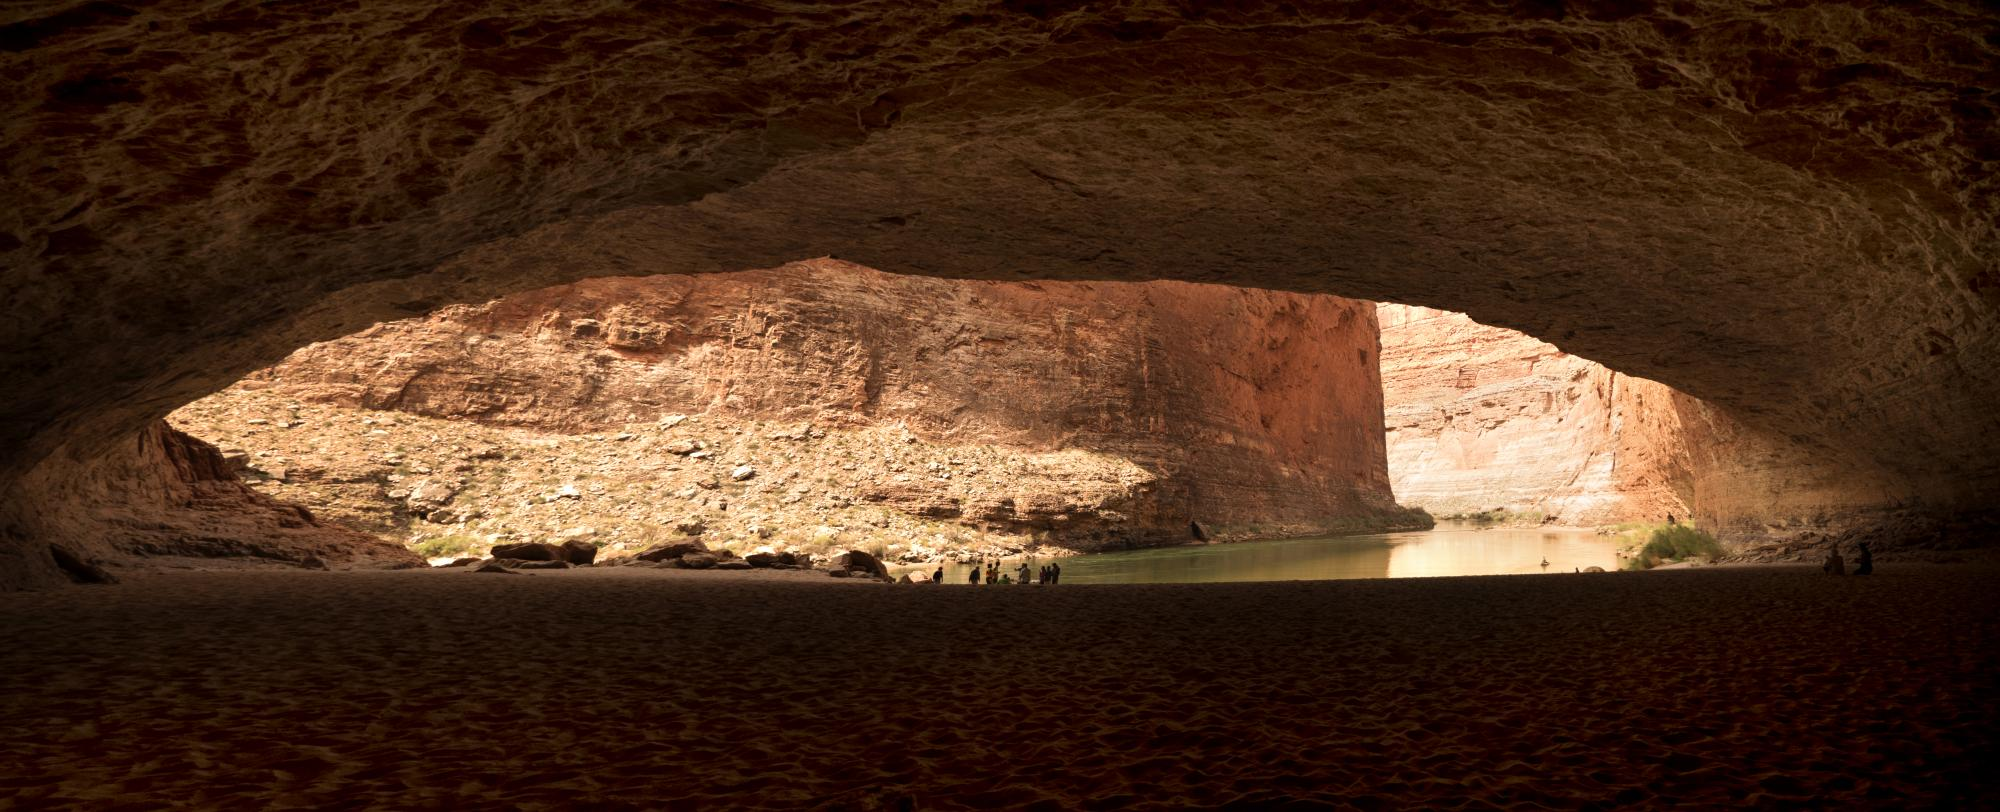 Inside Red Wall Cavern of the Grand Canyon